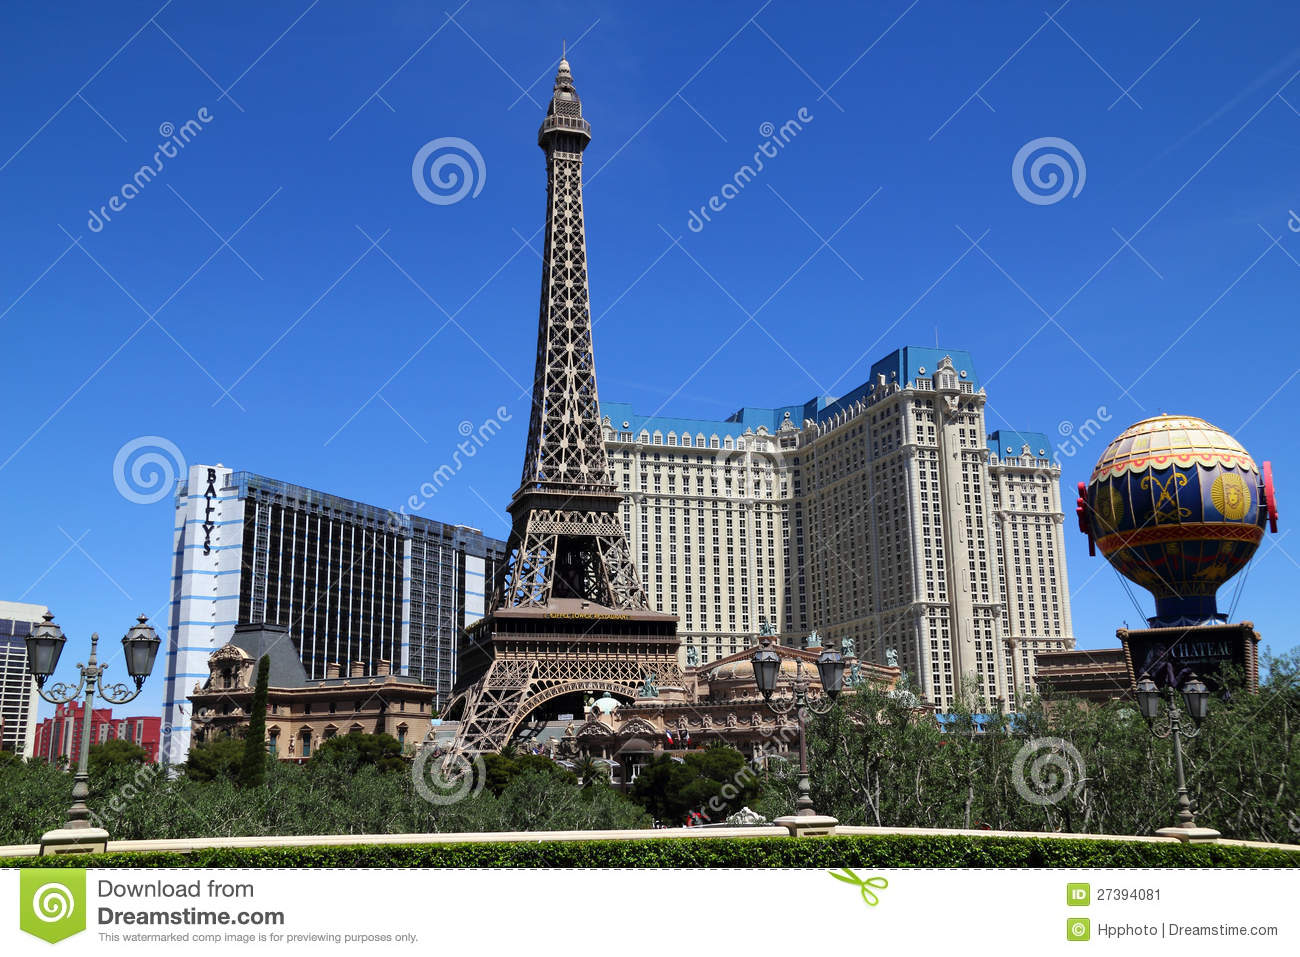 Paris hotel and casino las vegas nv future of online gambling